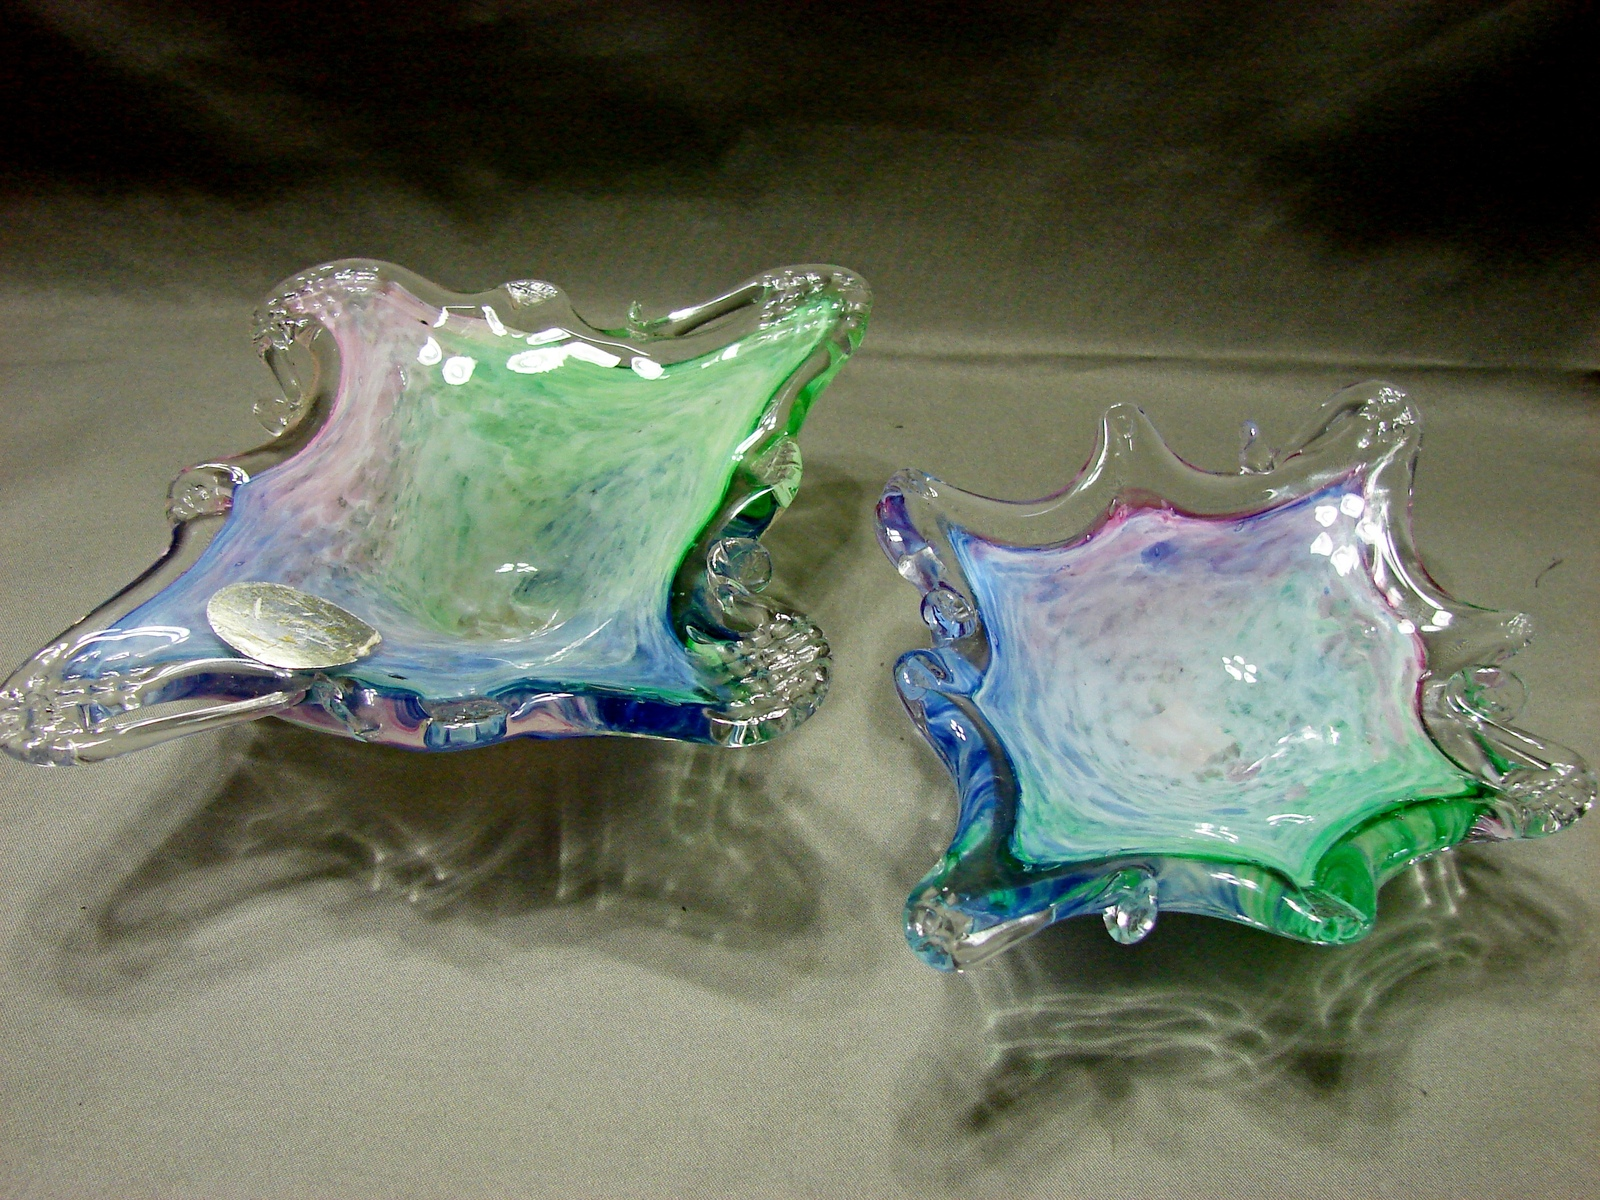 2 Crystal Clear Italian Art Glass Candy DishesDesigned to Resemble Murano - $12.99